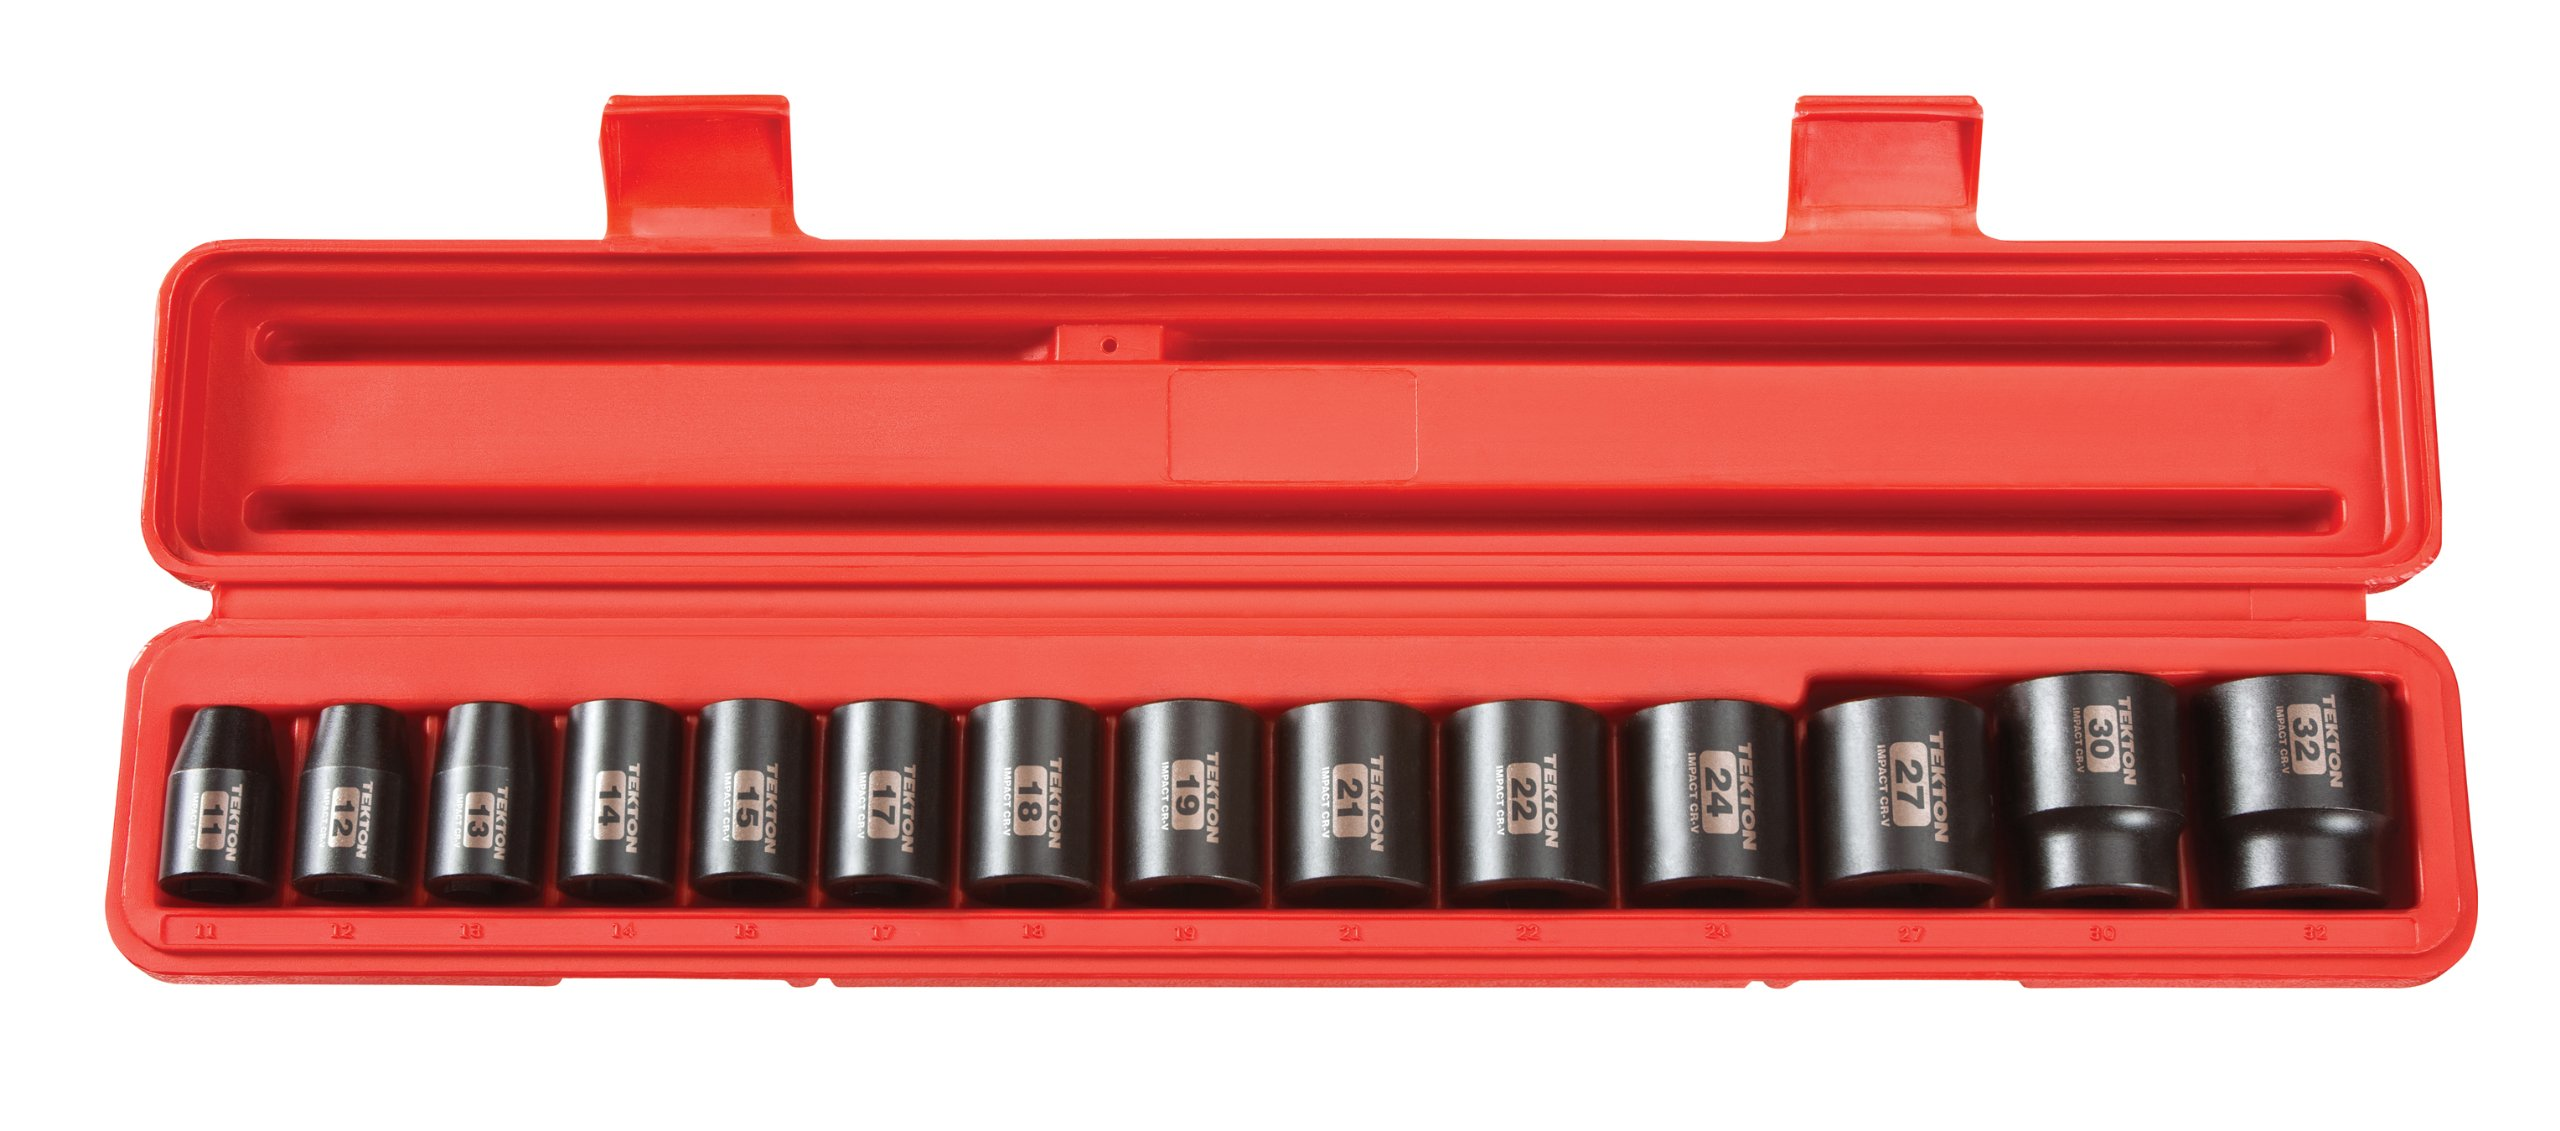 TEKTON 1/2-Inch Drive Shallow Impact Socket Set, Metric, Cr-V, 6-Point, 11 mm - 32 mm, 14-Sockets | 4817 by TEKTON